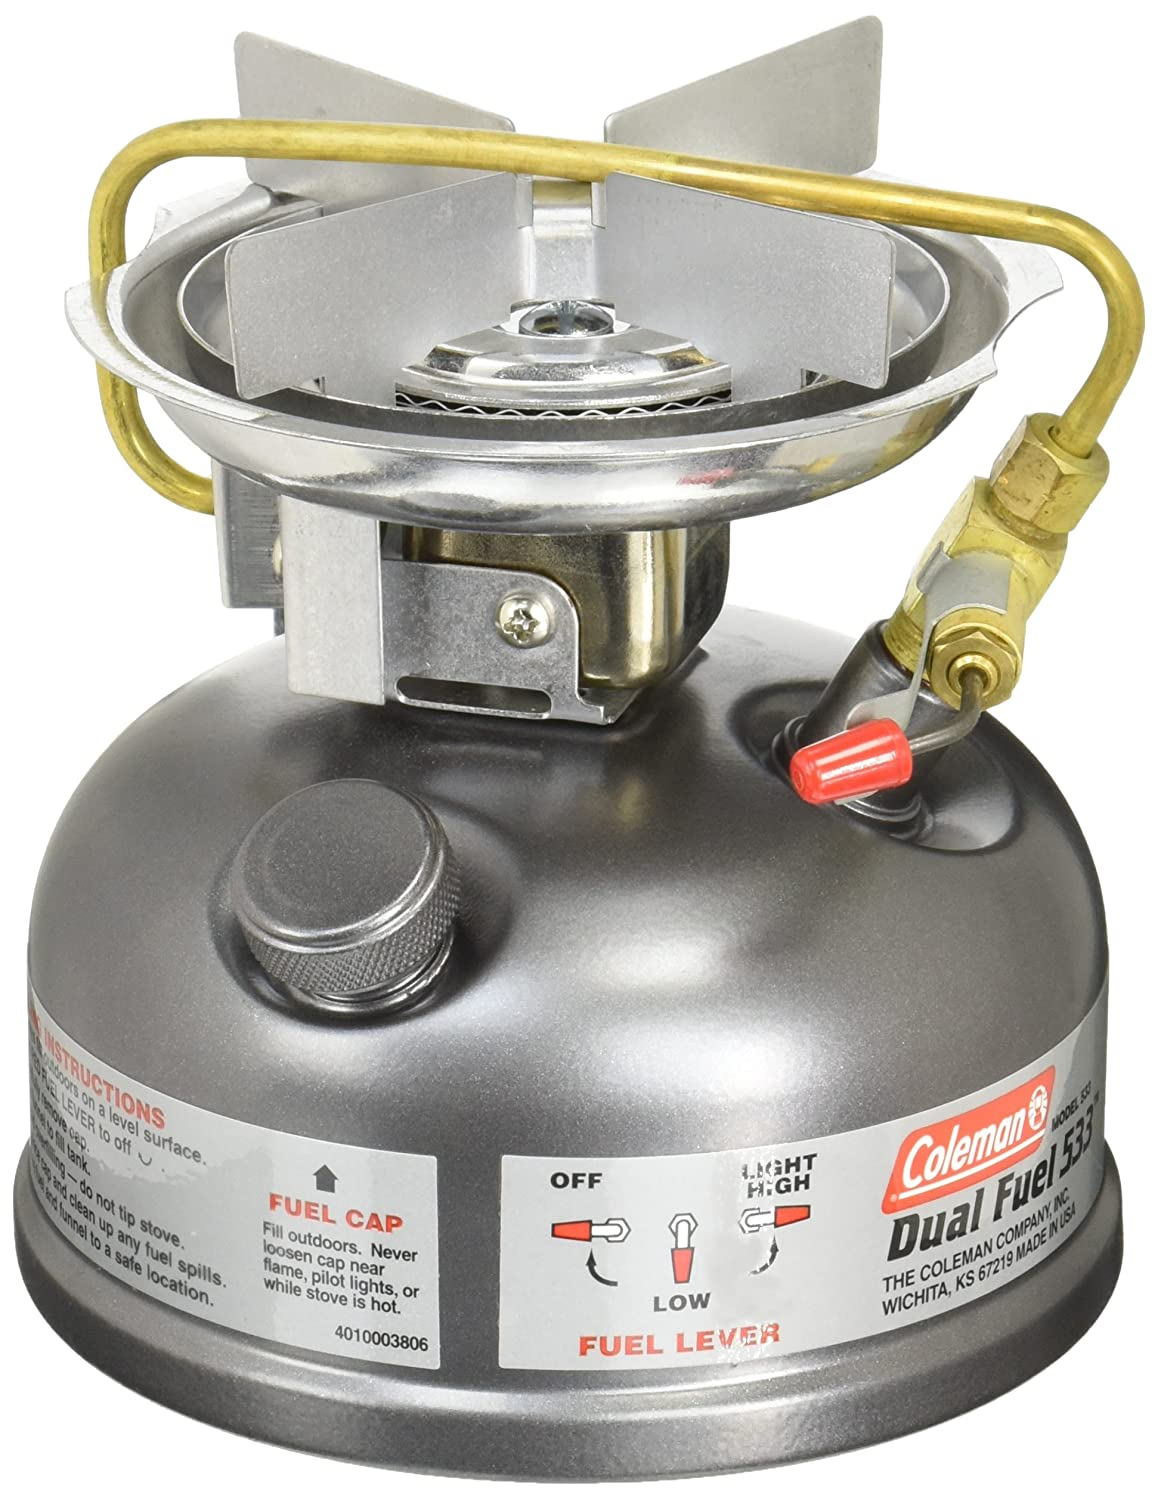 Amazon.com : Coleman Guide Series Compact Dual Fuel Stove, Coleman ...